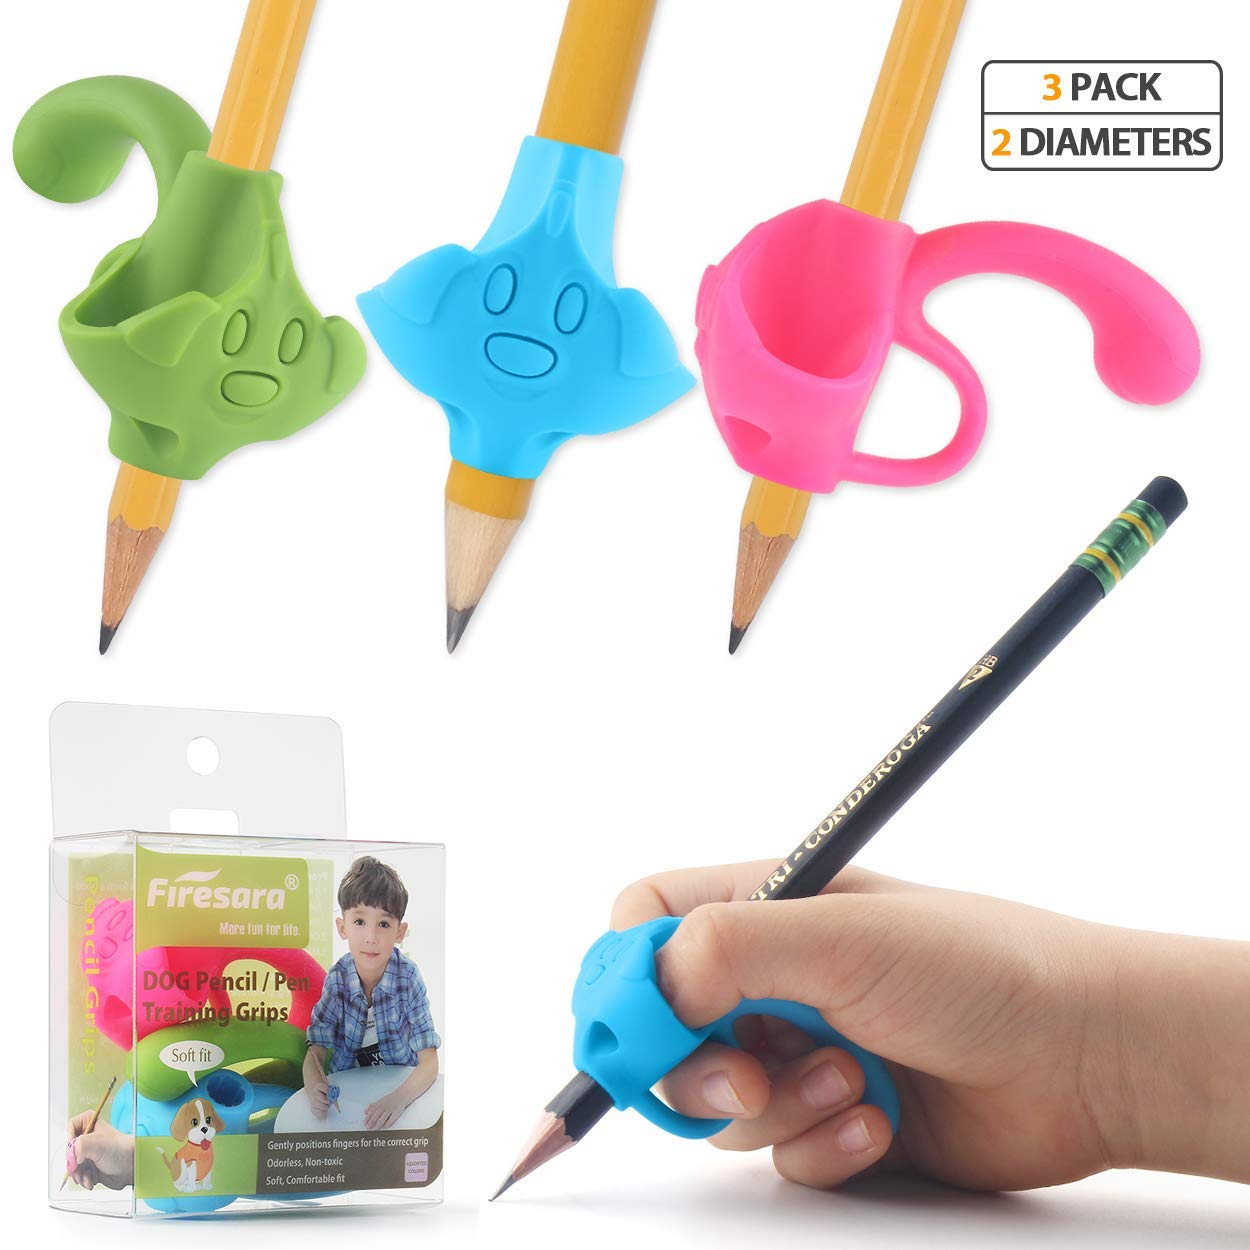 Firesara Top Class Pencil Grips, 2020 Original Patent Five Finger Fixed and Two Sizes Writing Correction Device Handwriting Aid for Kids Children Preschool Adult Lefties and Righties